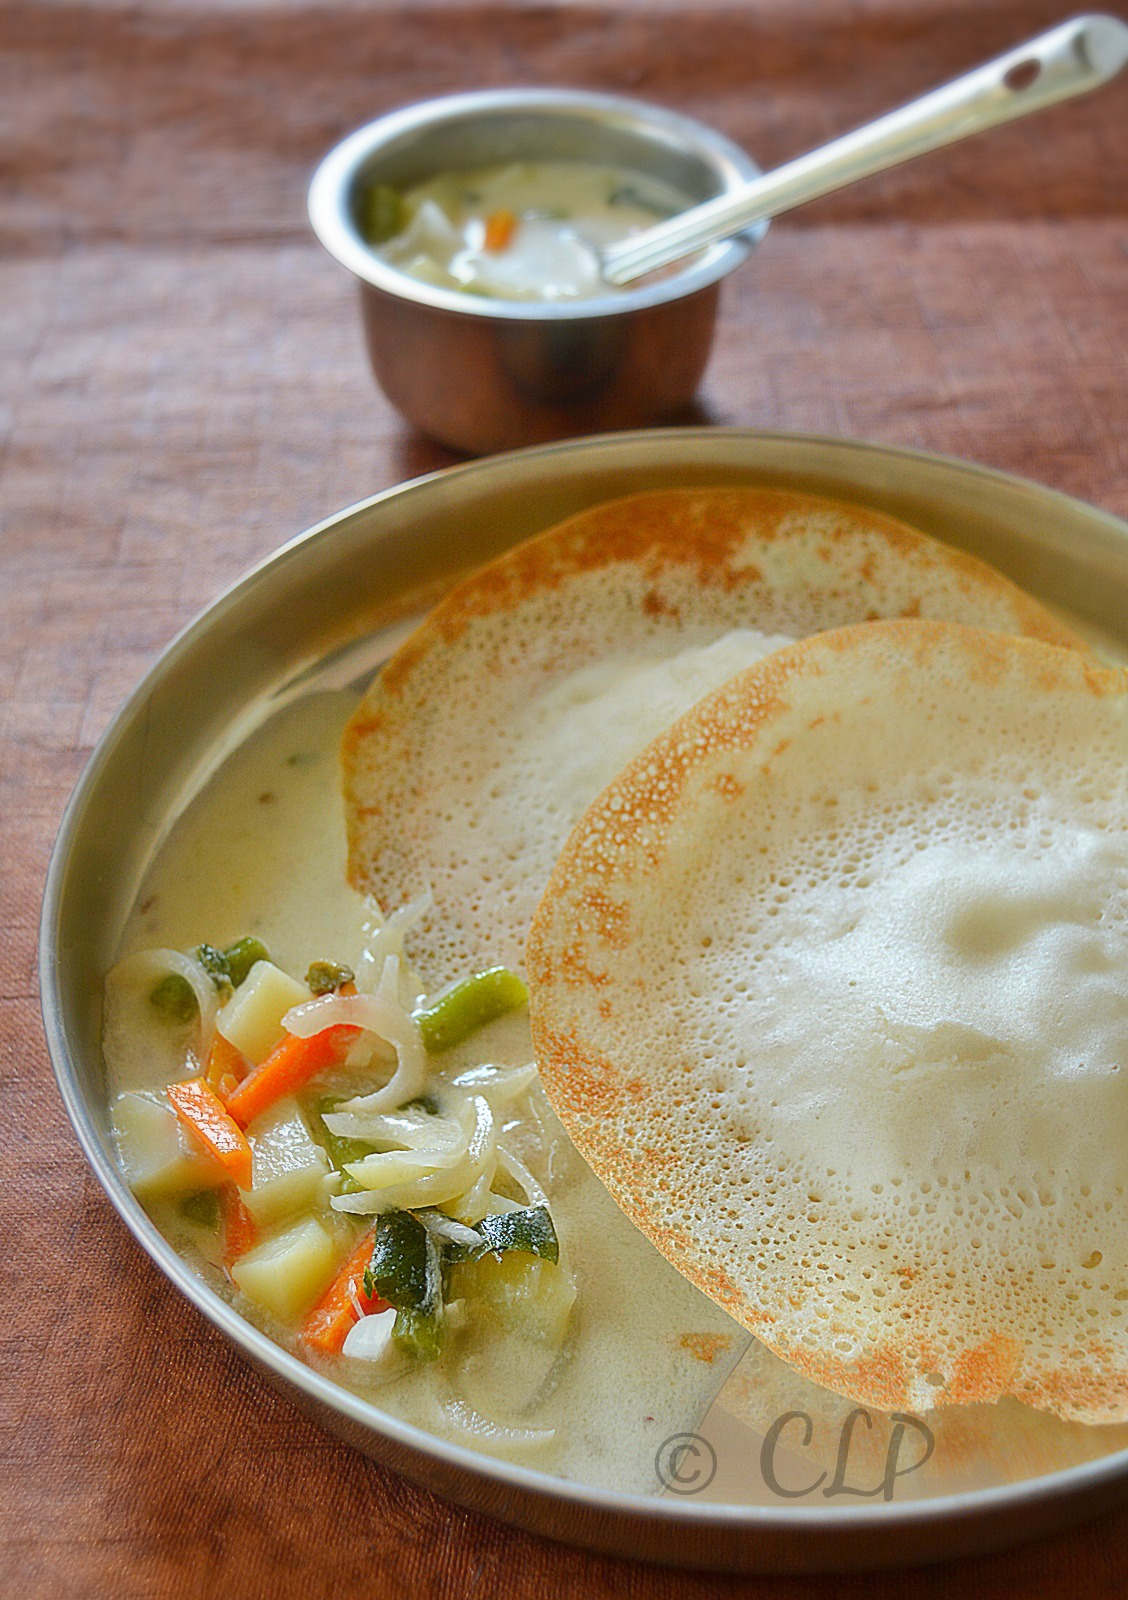 Cook like priya vegetable stew for appam kerala mixed for Appam and chicken stew kerala cuisine